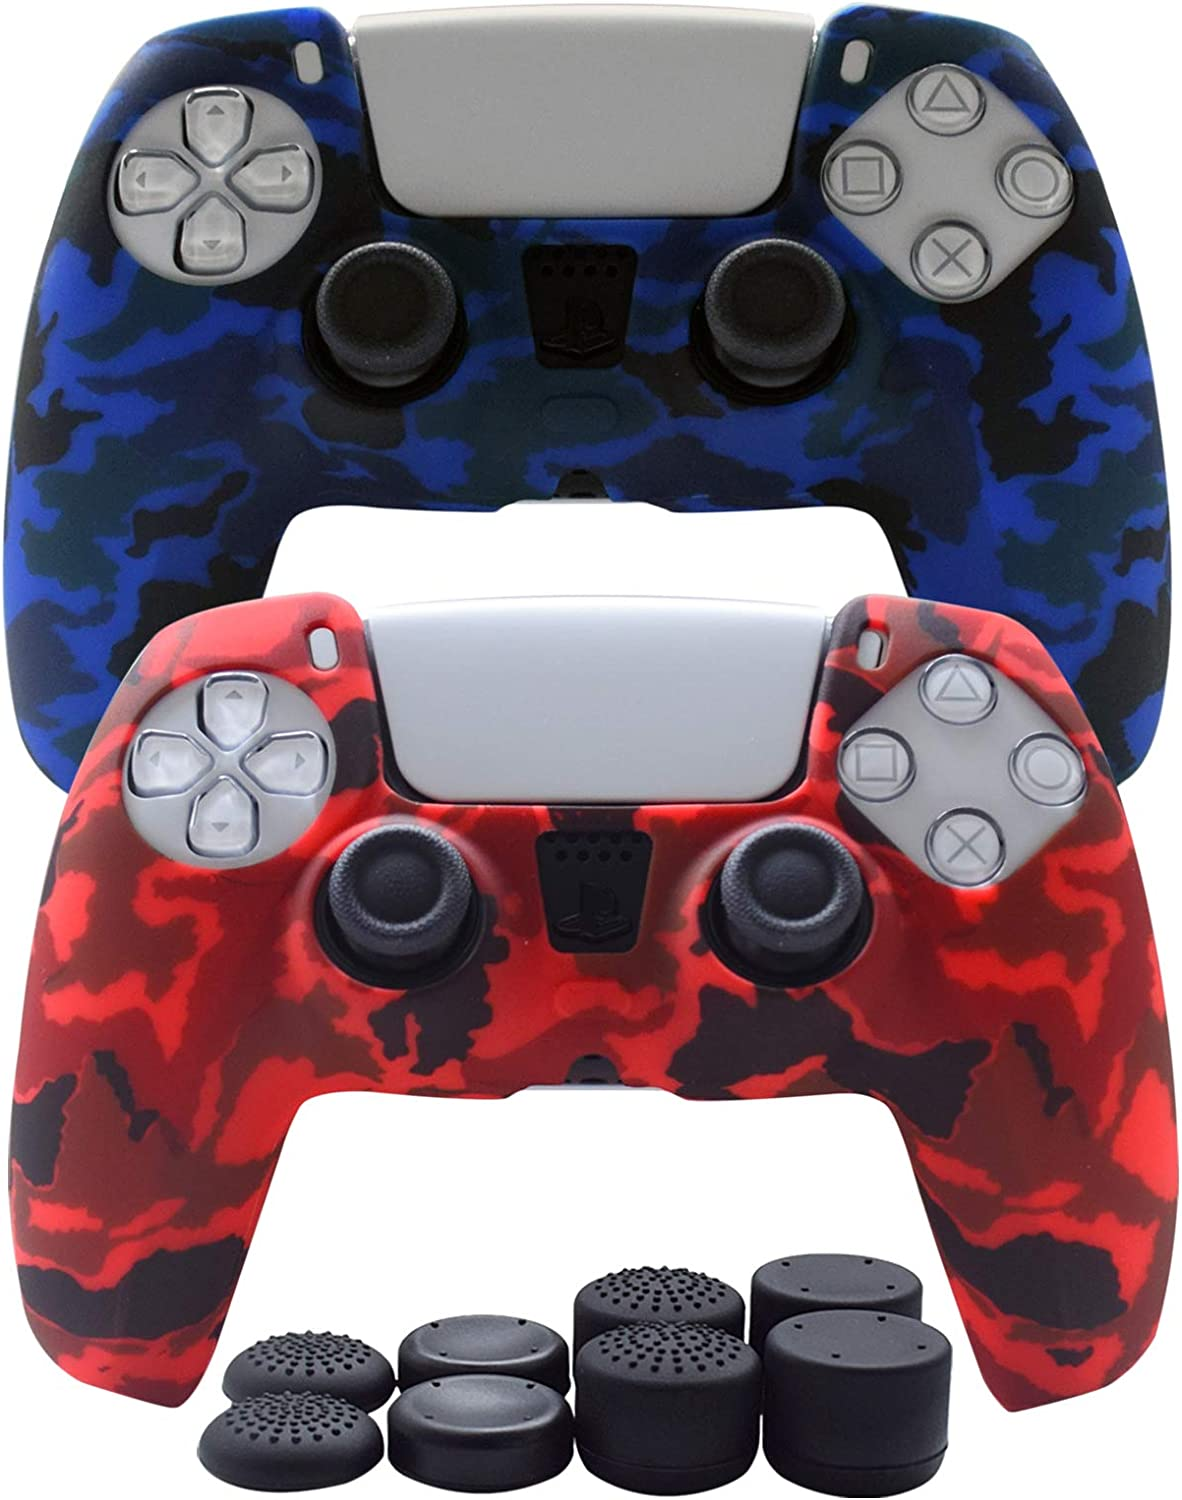 PS5 Controller Skin-Hikfly Silicone Cover for PS5 DualSense Controller Grips,Non-Slip Cover for Playstation 5 Controller- 2 x Skin with 8 x Thumb Grip Caps(Blue,Red)